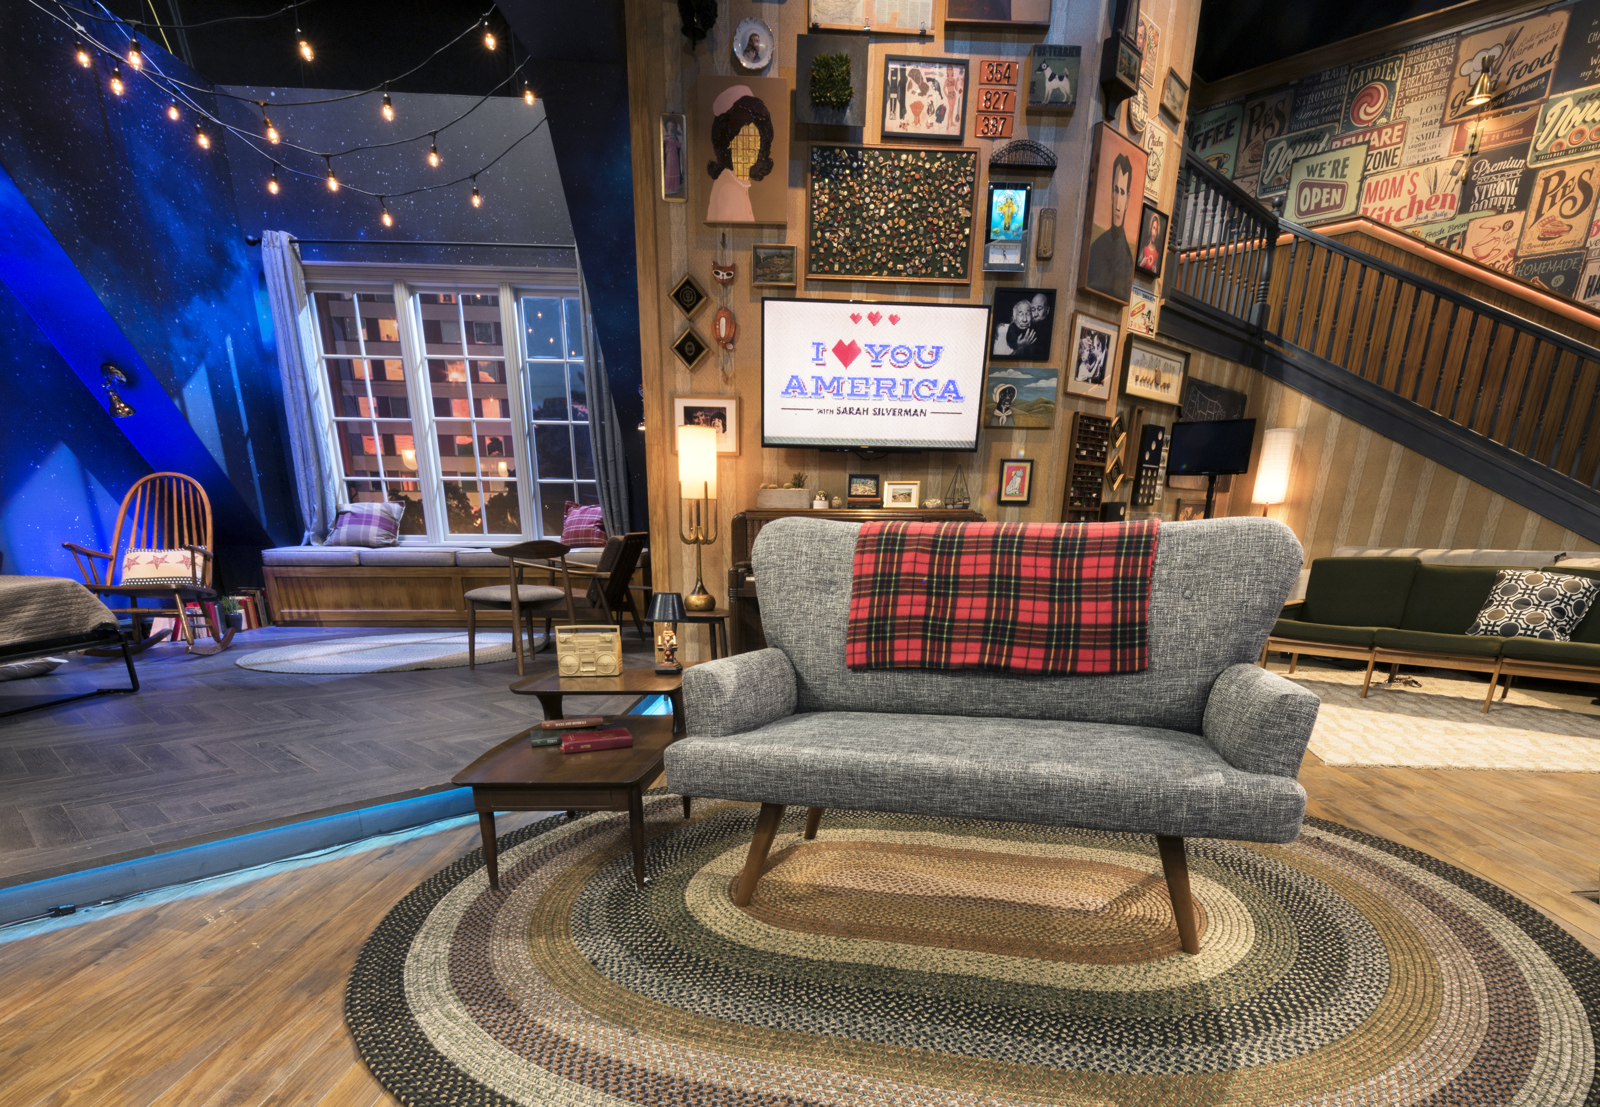 ncs_i-love-you-america-sarah-silverman-scenic-design-couch_0001